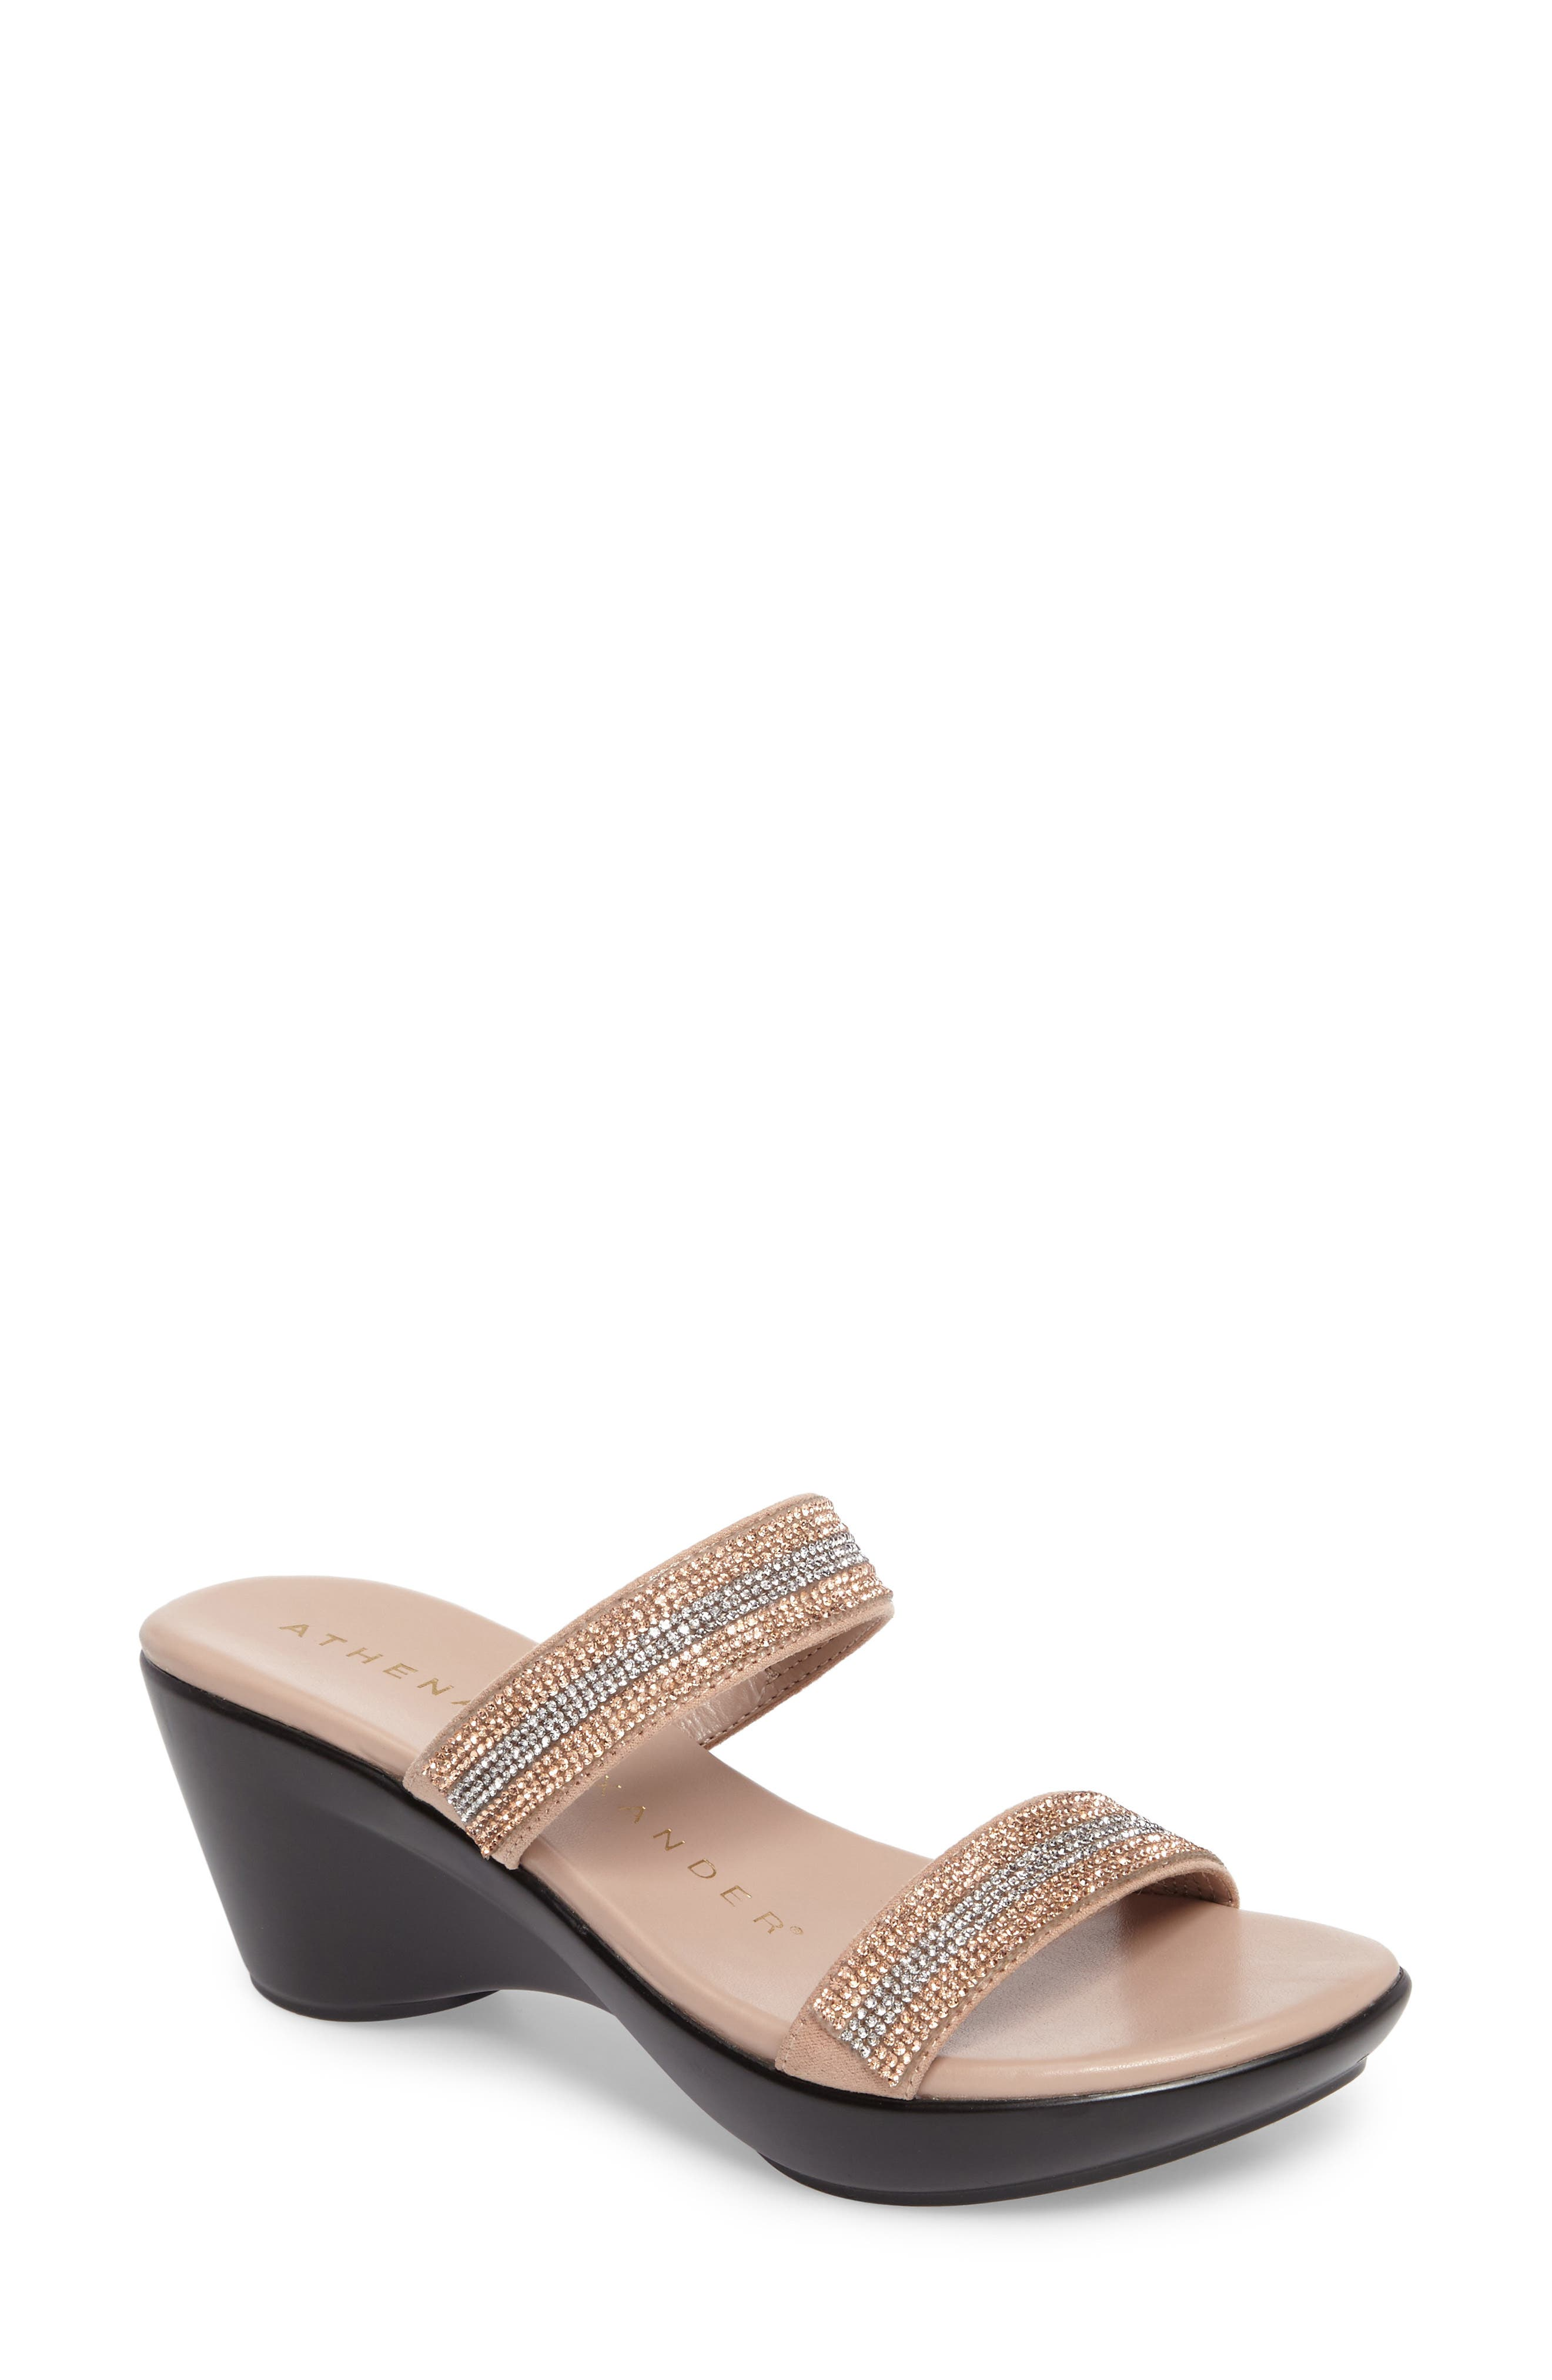 Arlo Wedge Sandal,                         Main,                         color, Rose Gold Synthetic